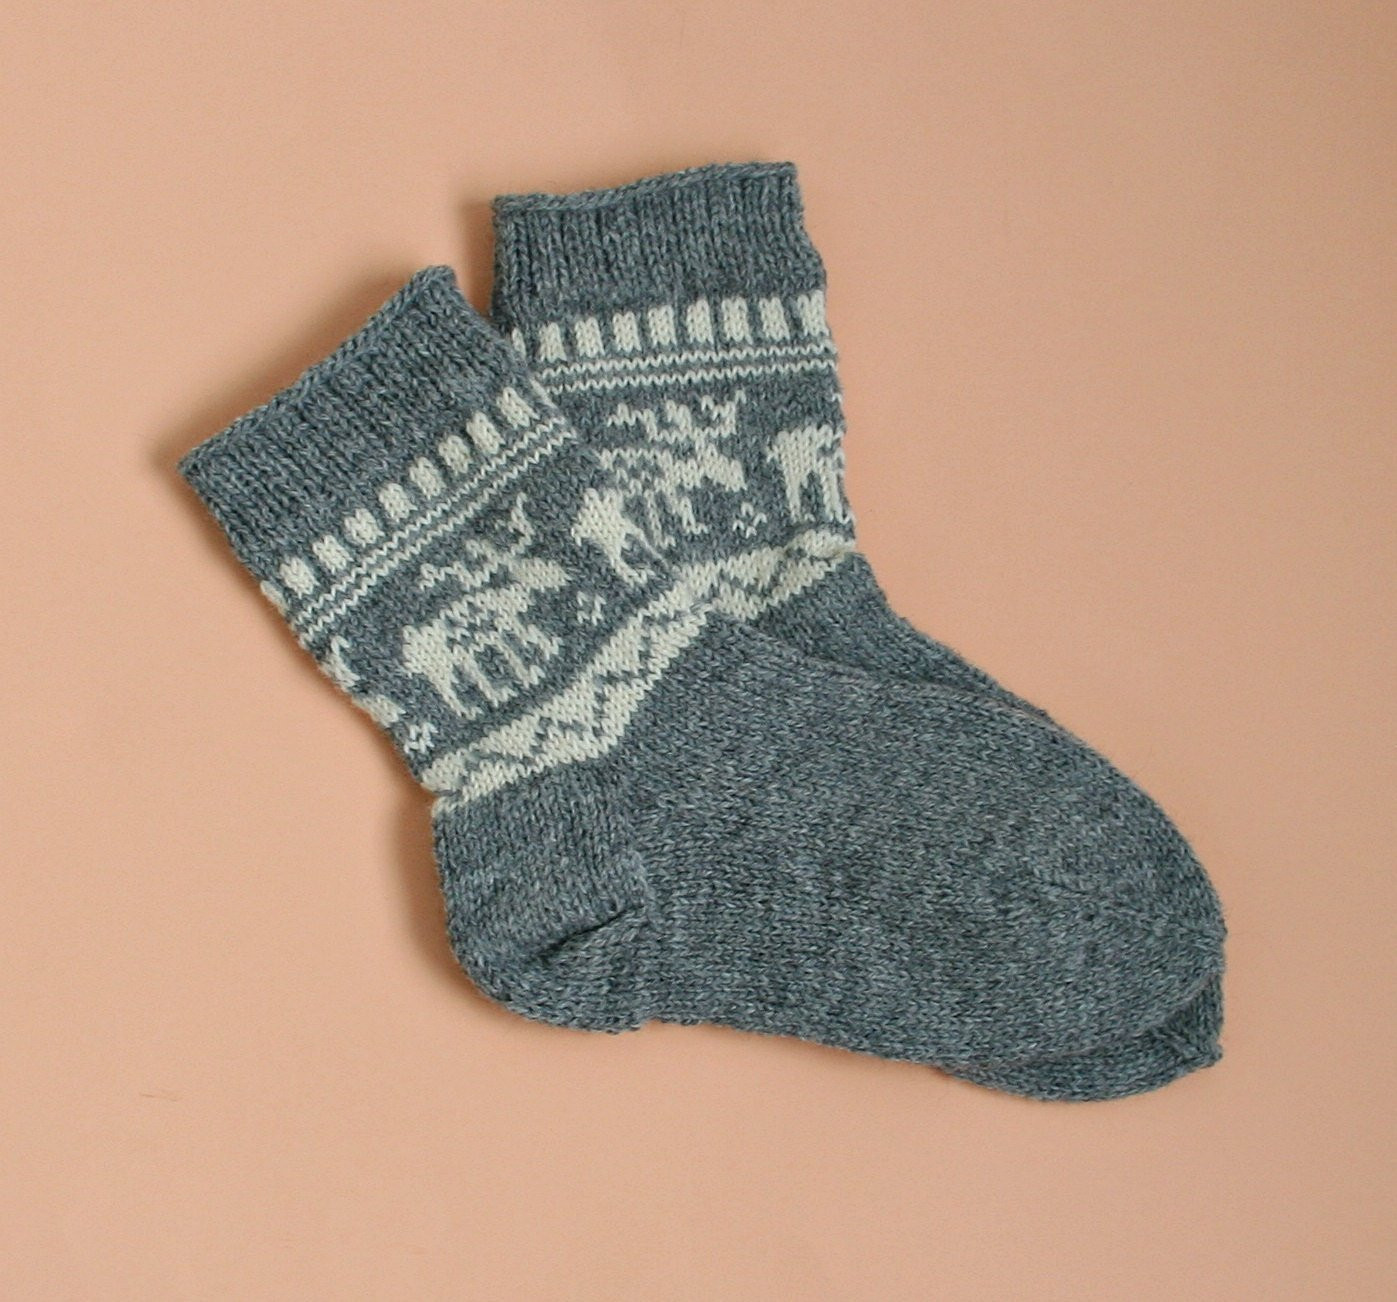 Patterned socks Best Of Hand Knit Wool socks Deer Pattern socks Moose Pattern socks Of Superb 48 Images Patterned socks